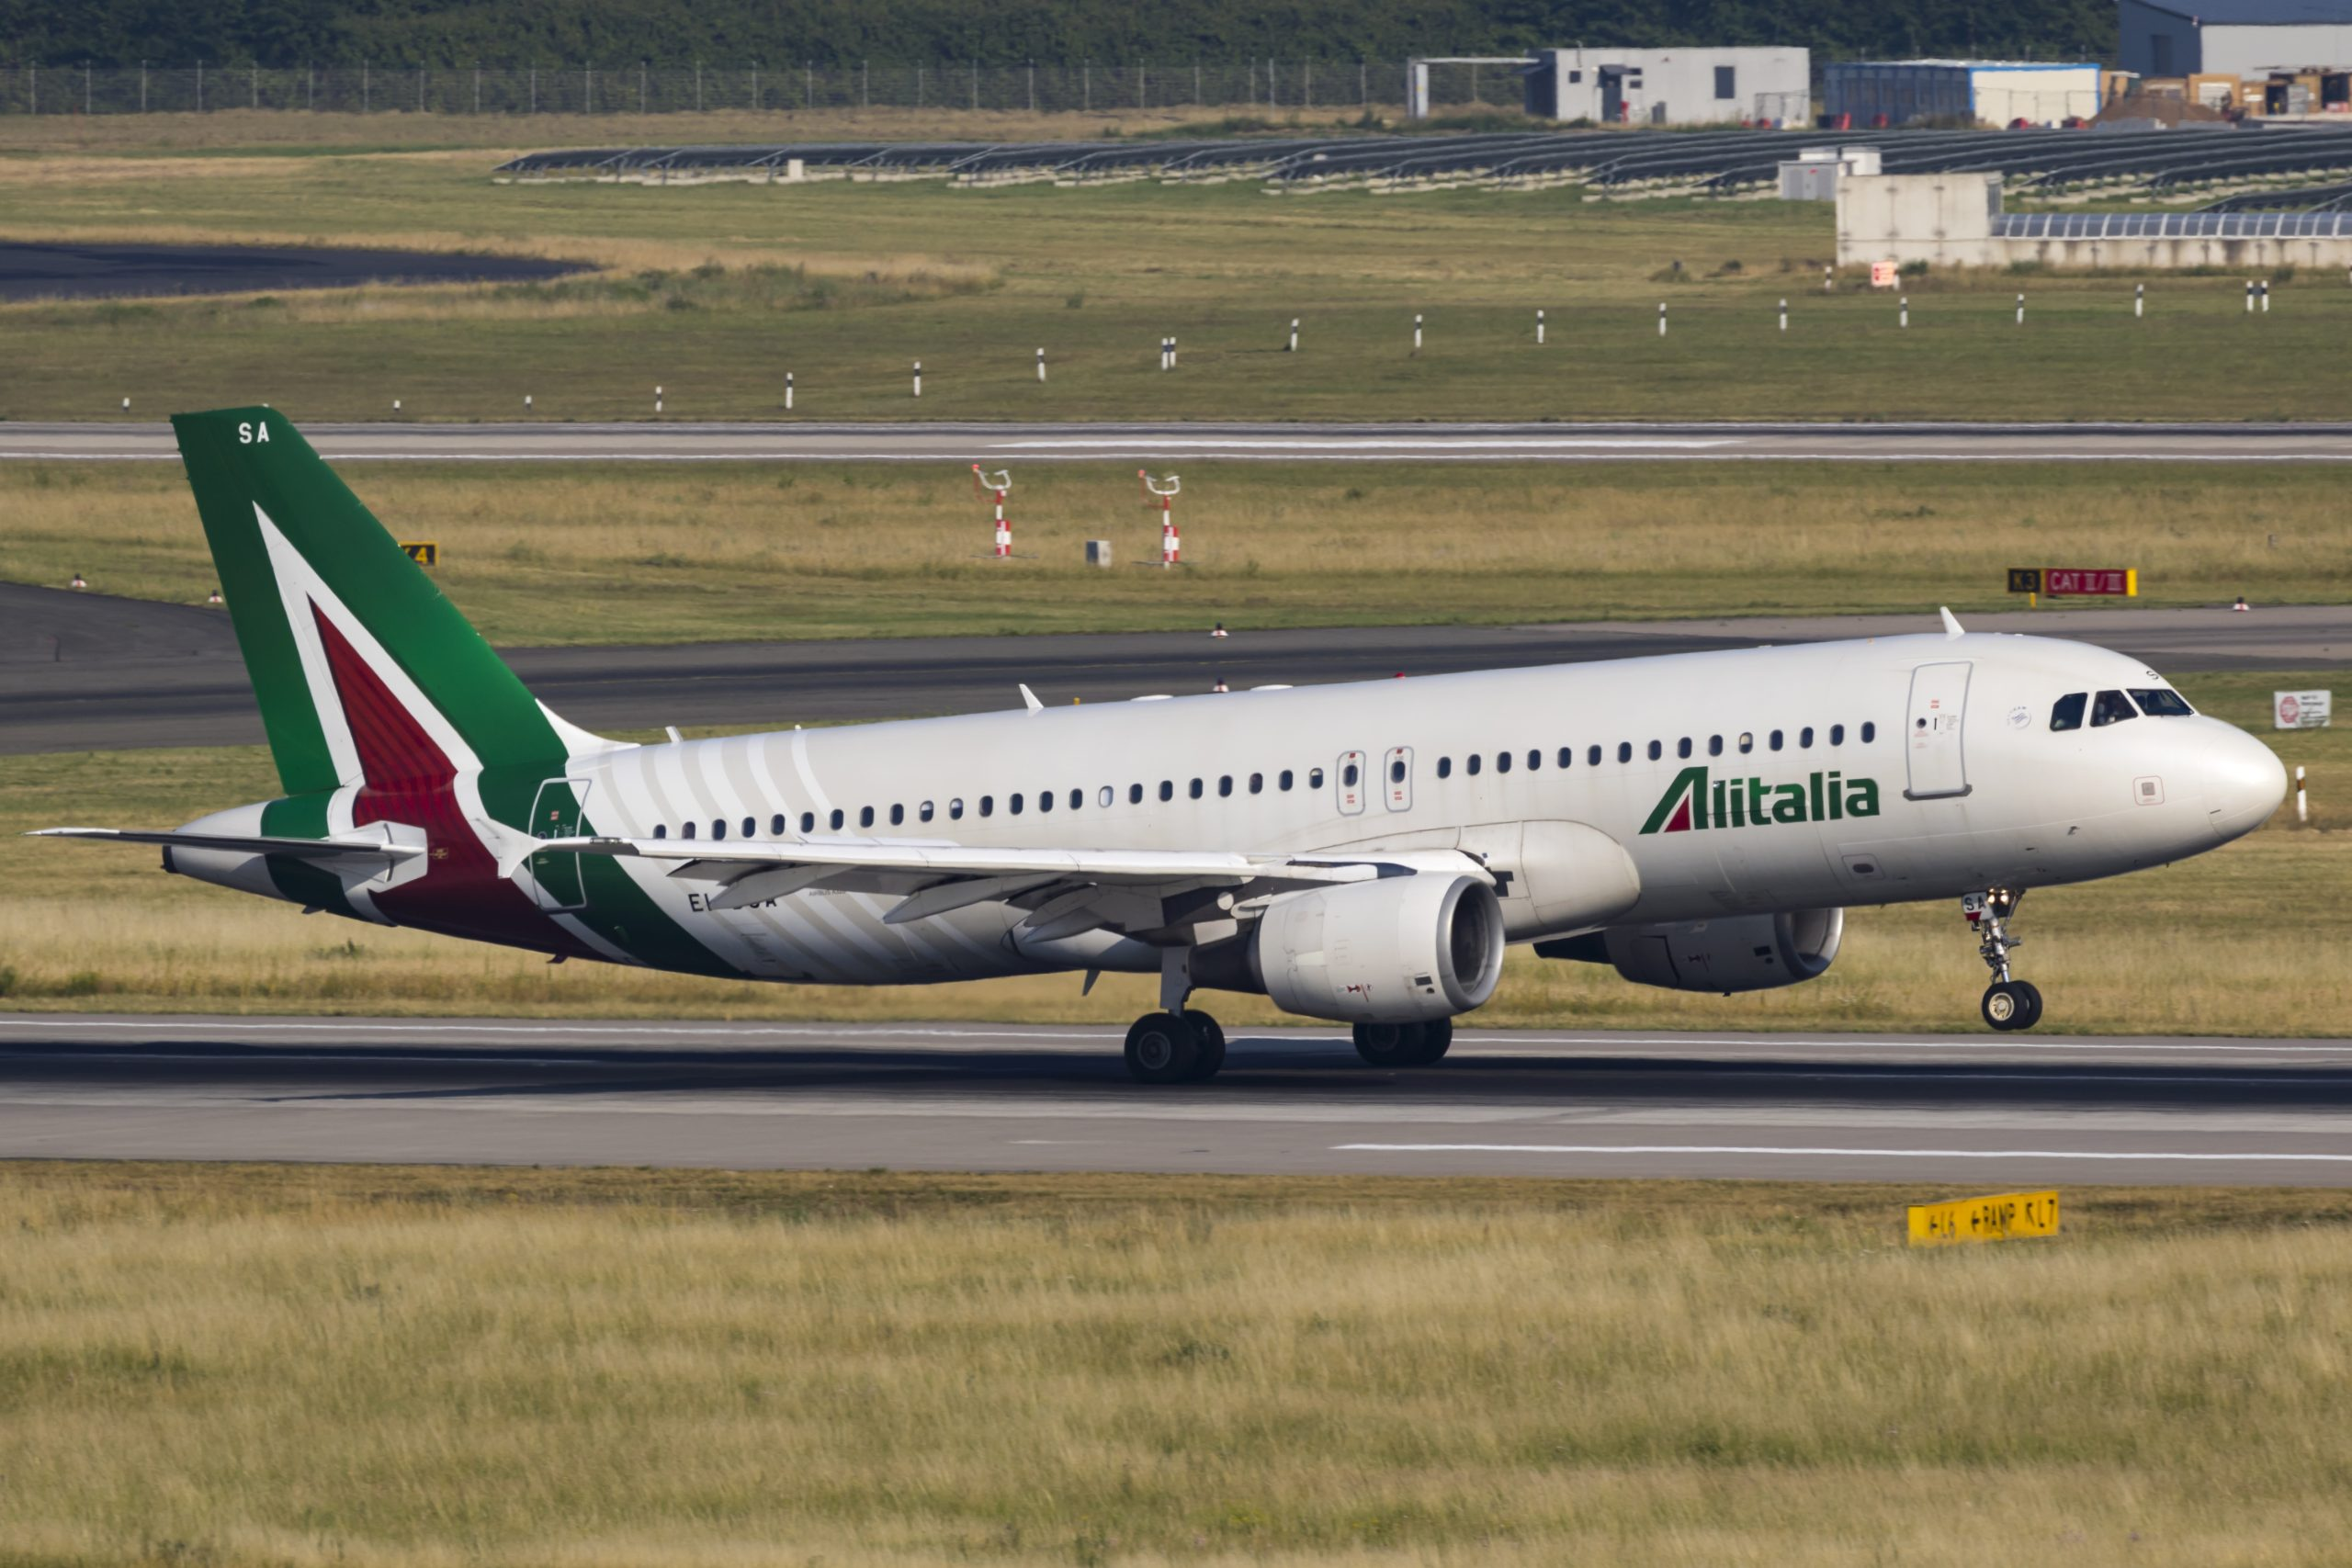 En Airbus A320-200 fra Alitalia. Foto: © Thorbjørn Brunander Sund, Danish Aviation Photo